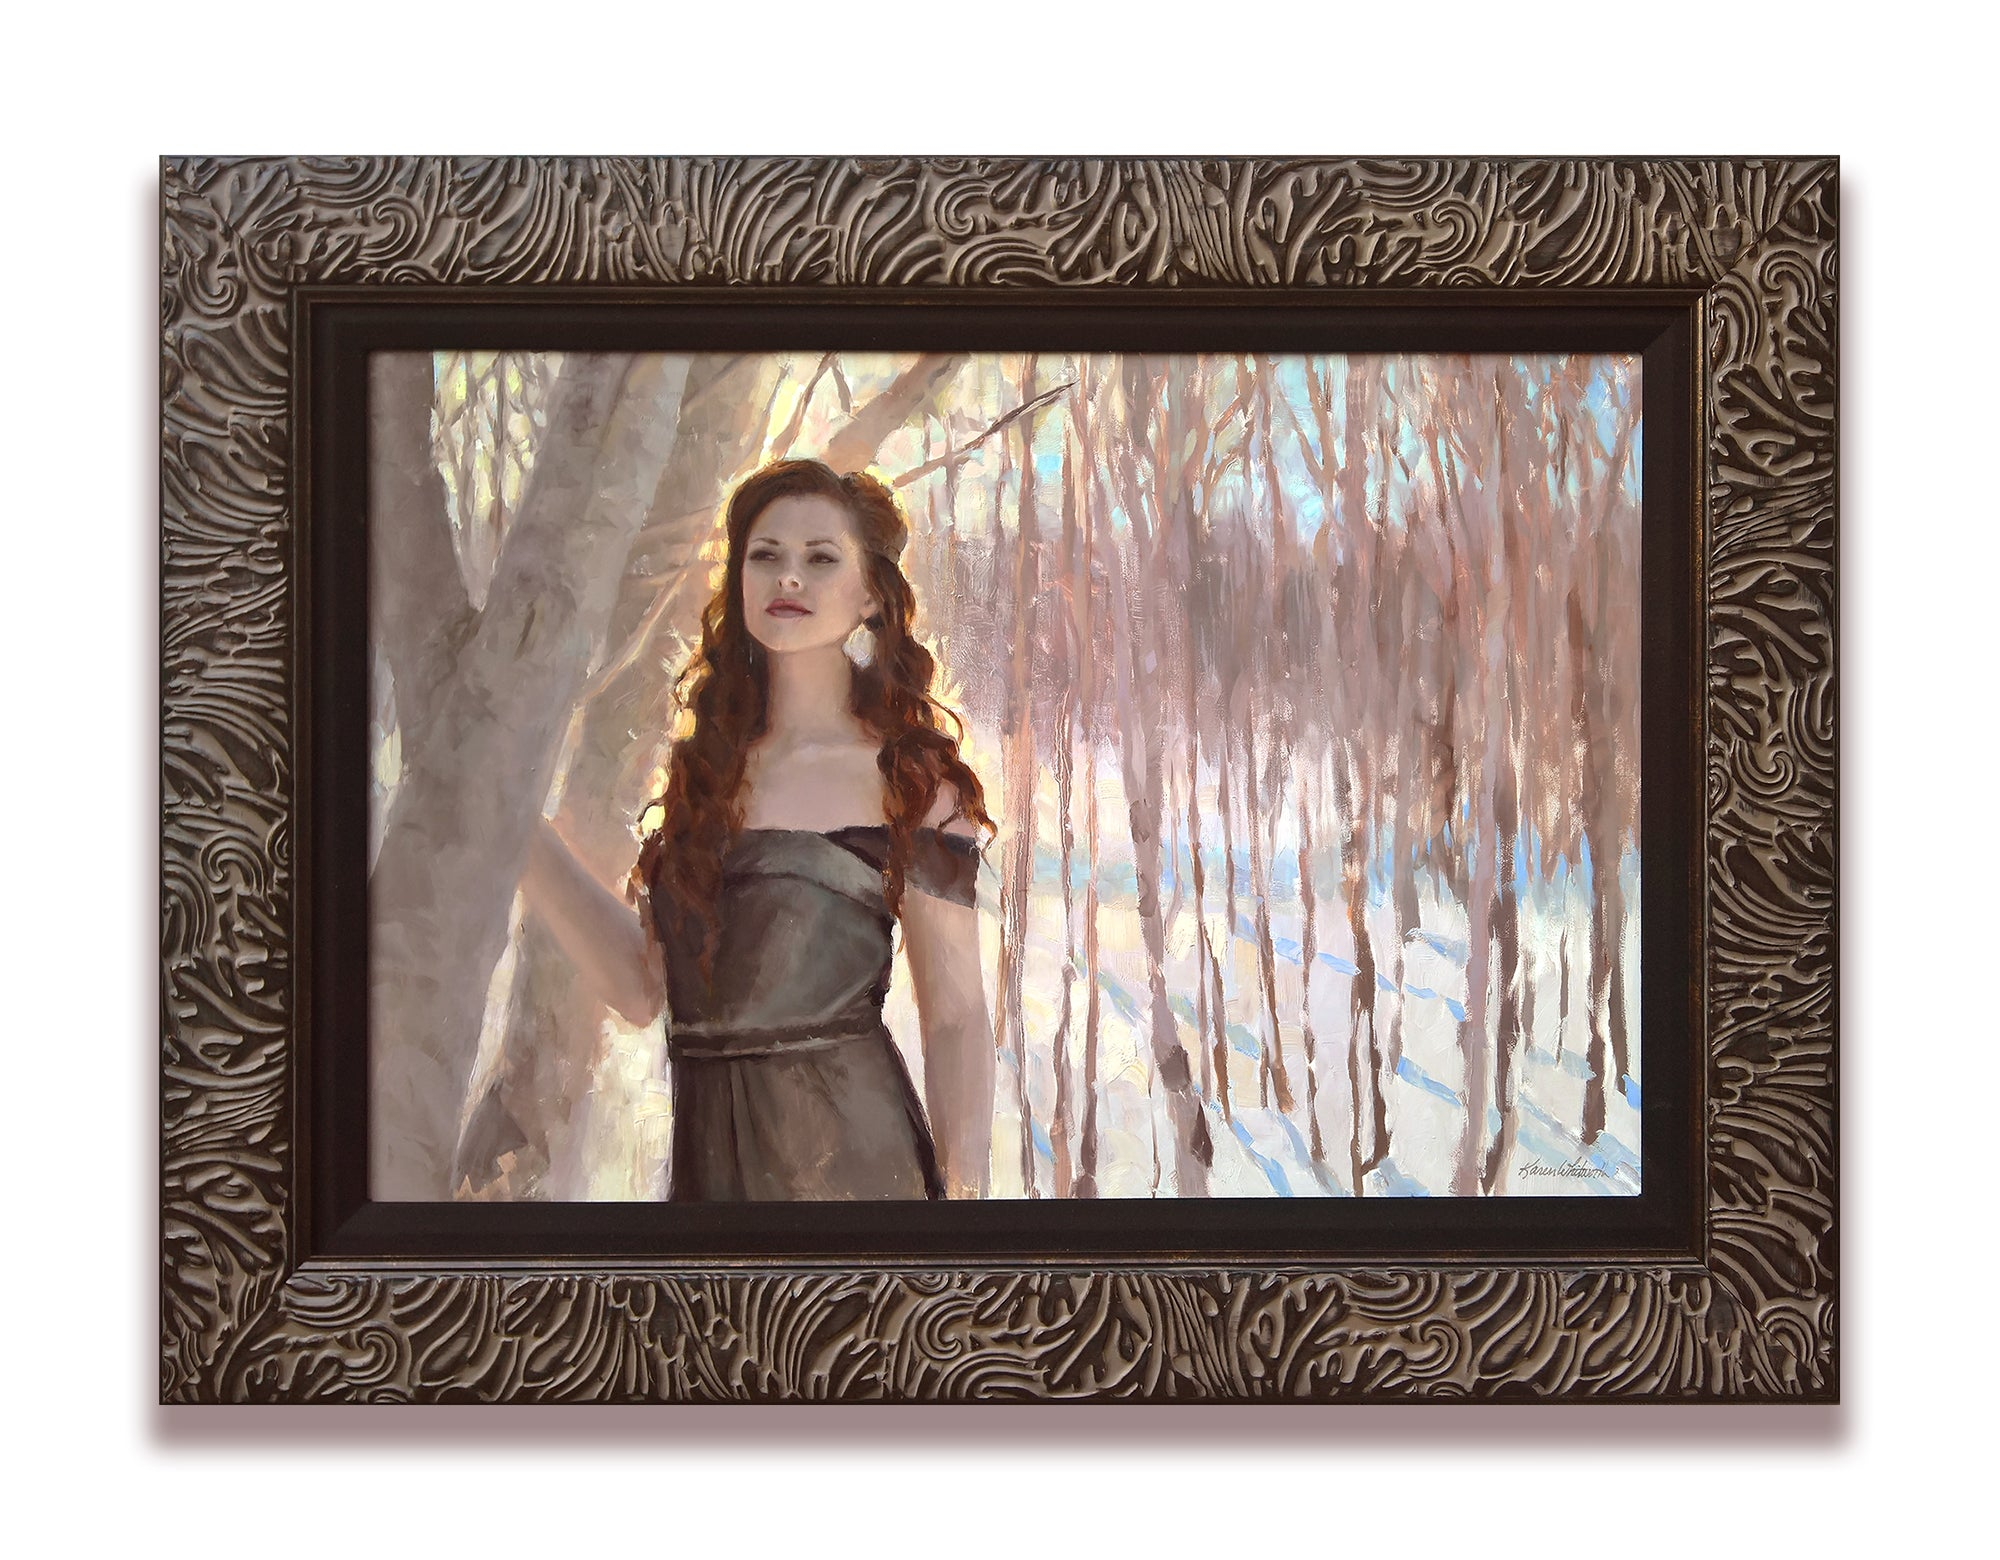 Custom Portrait Painting by Award Winning Portrait Artist Karen Whitworth